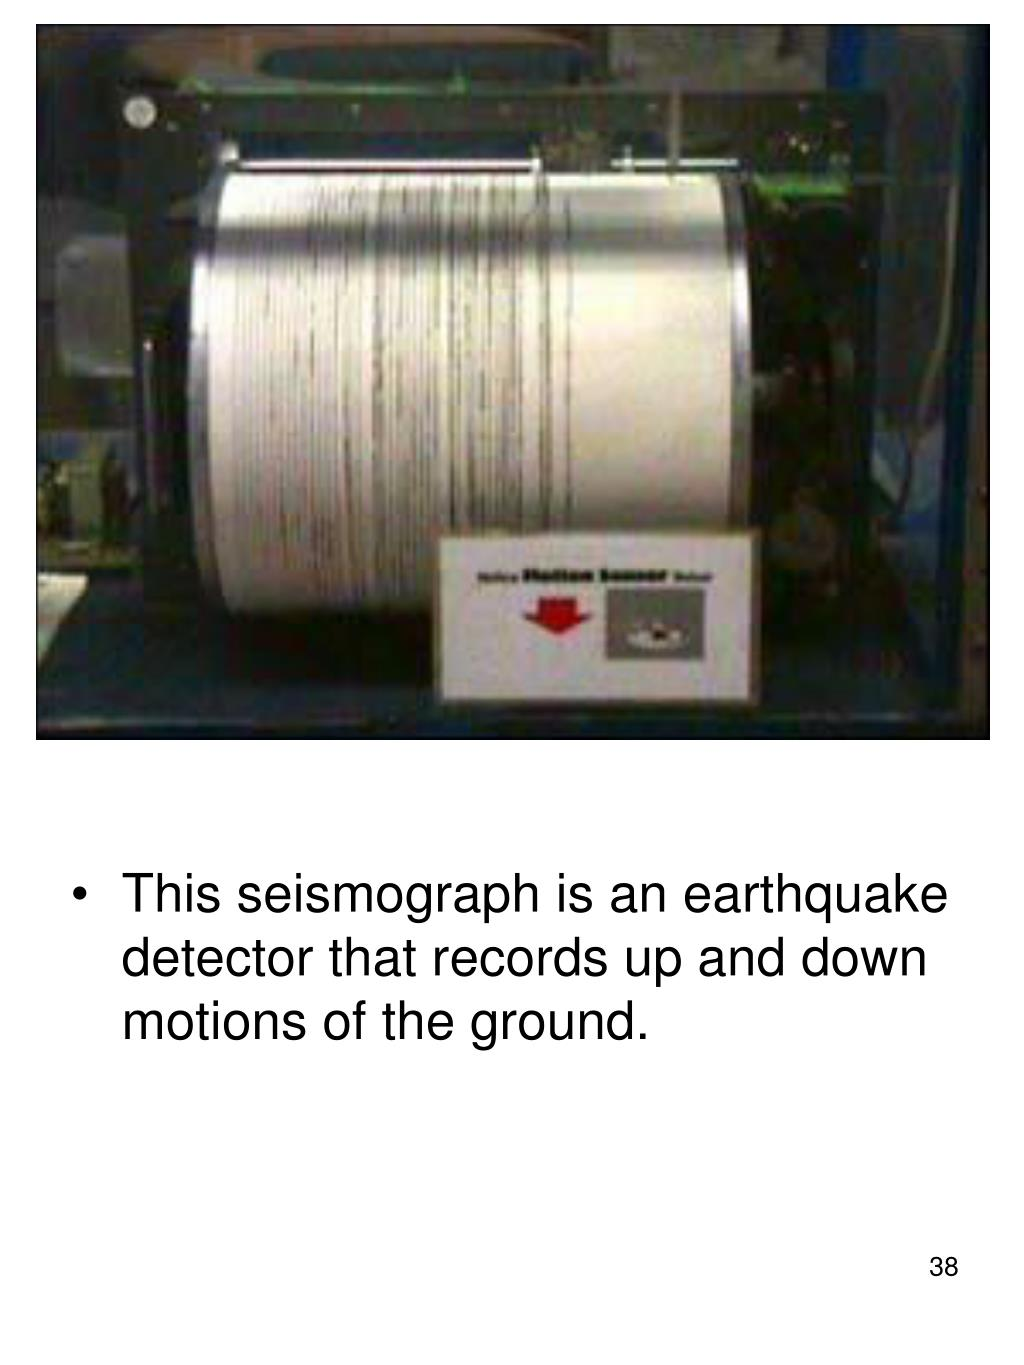 This seismograph is an earthquake detector that records up and down motions of the ground.